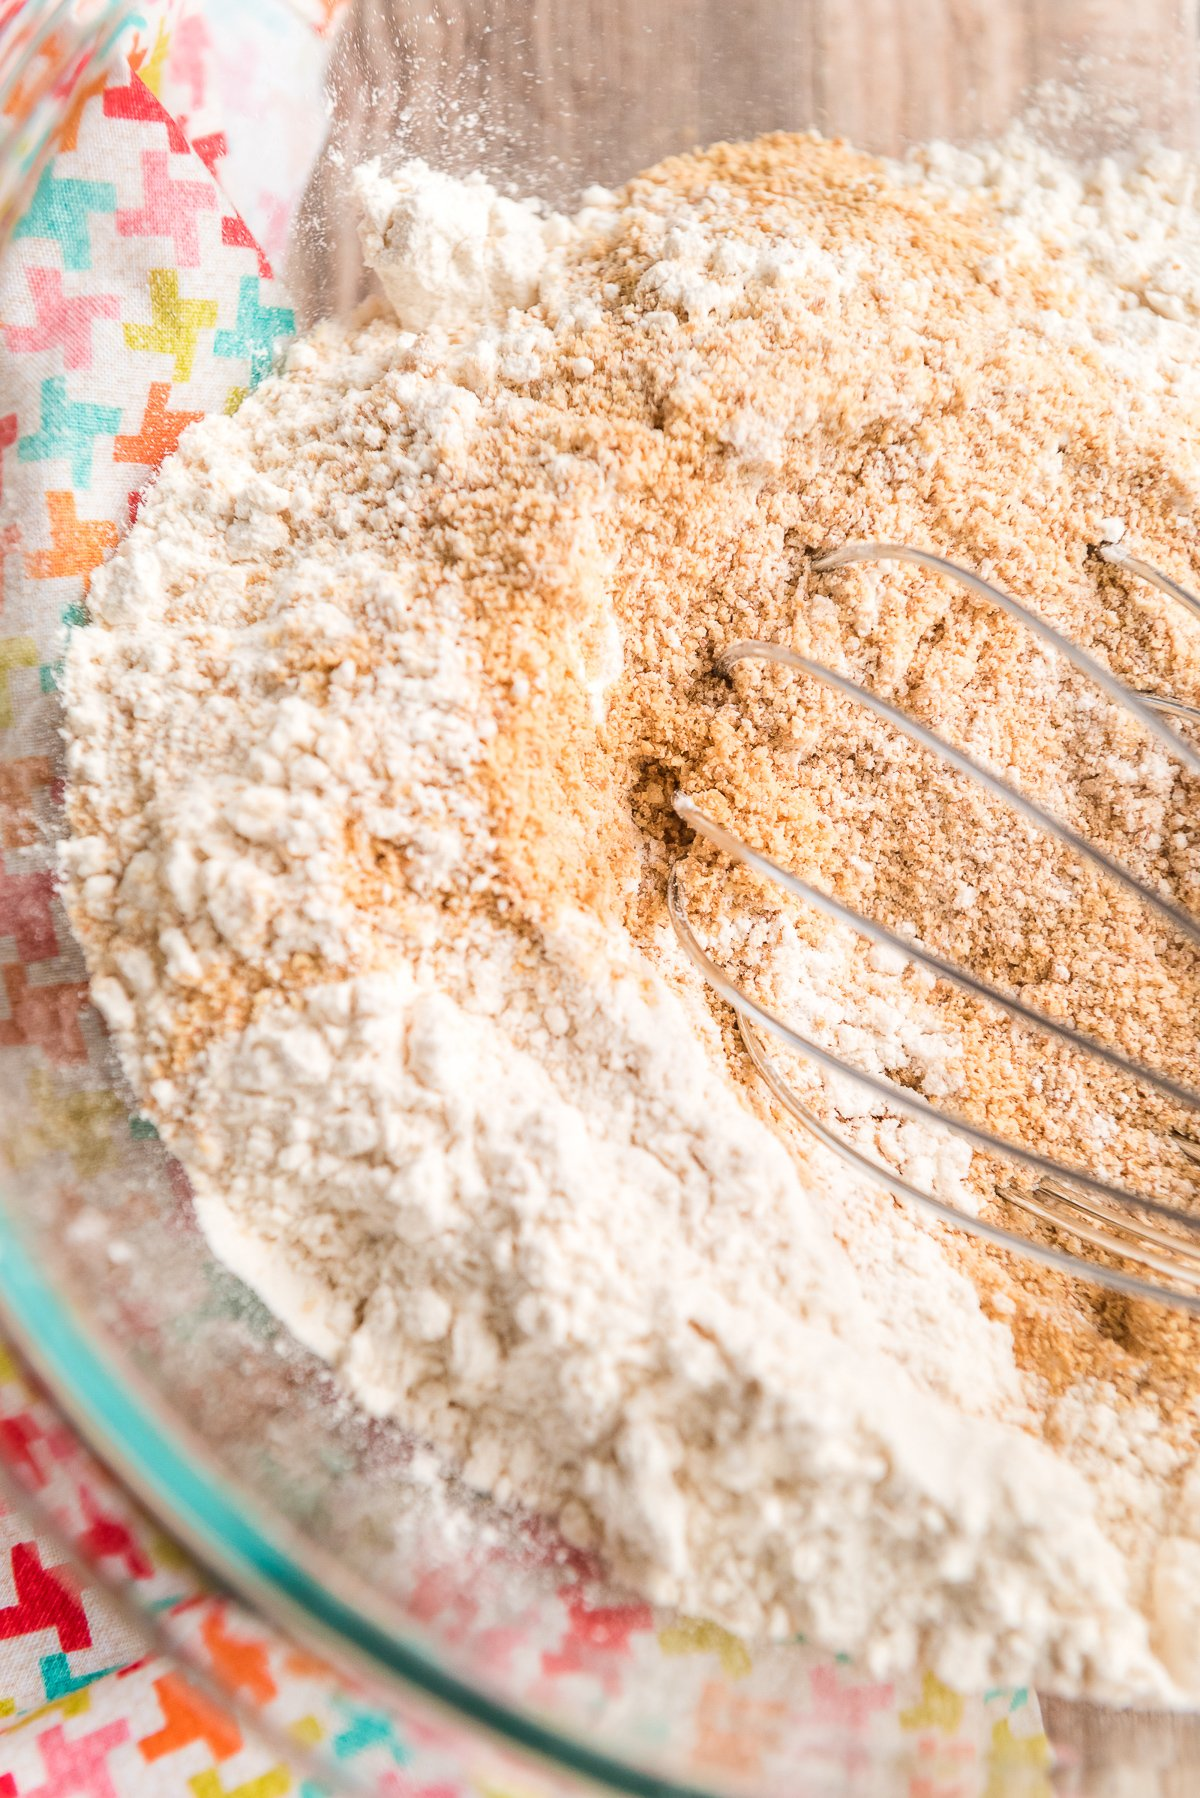 Flour and graham cracker crumbs being whisked together in a glass bowl.